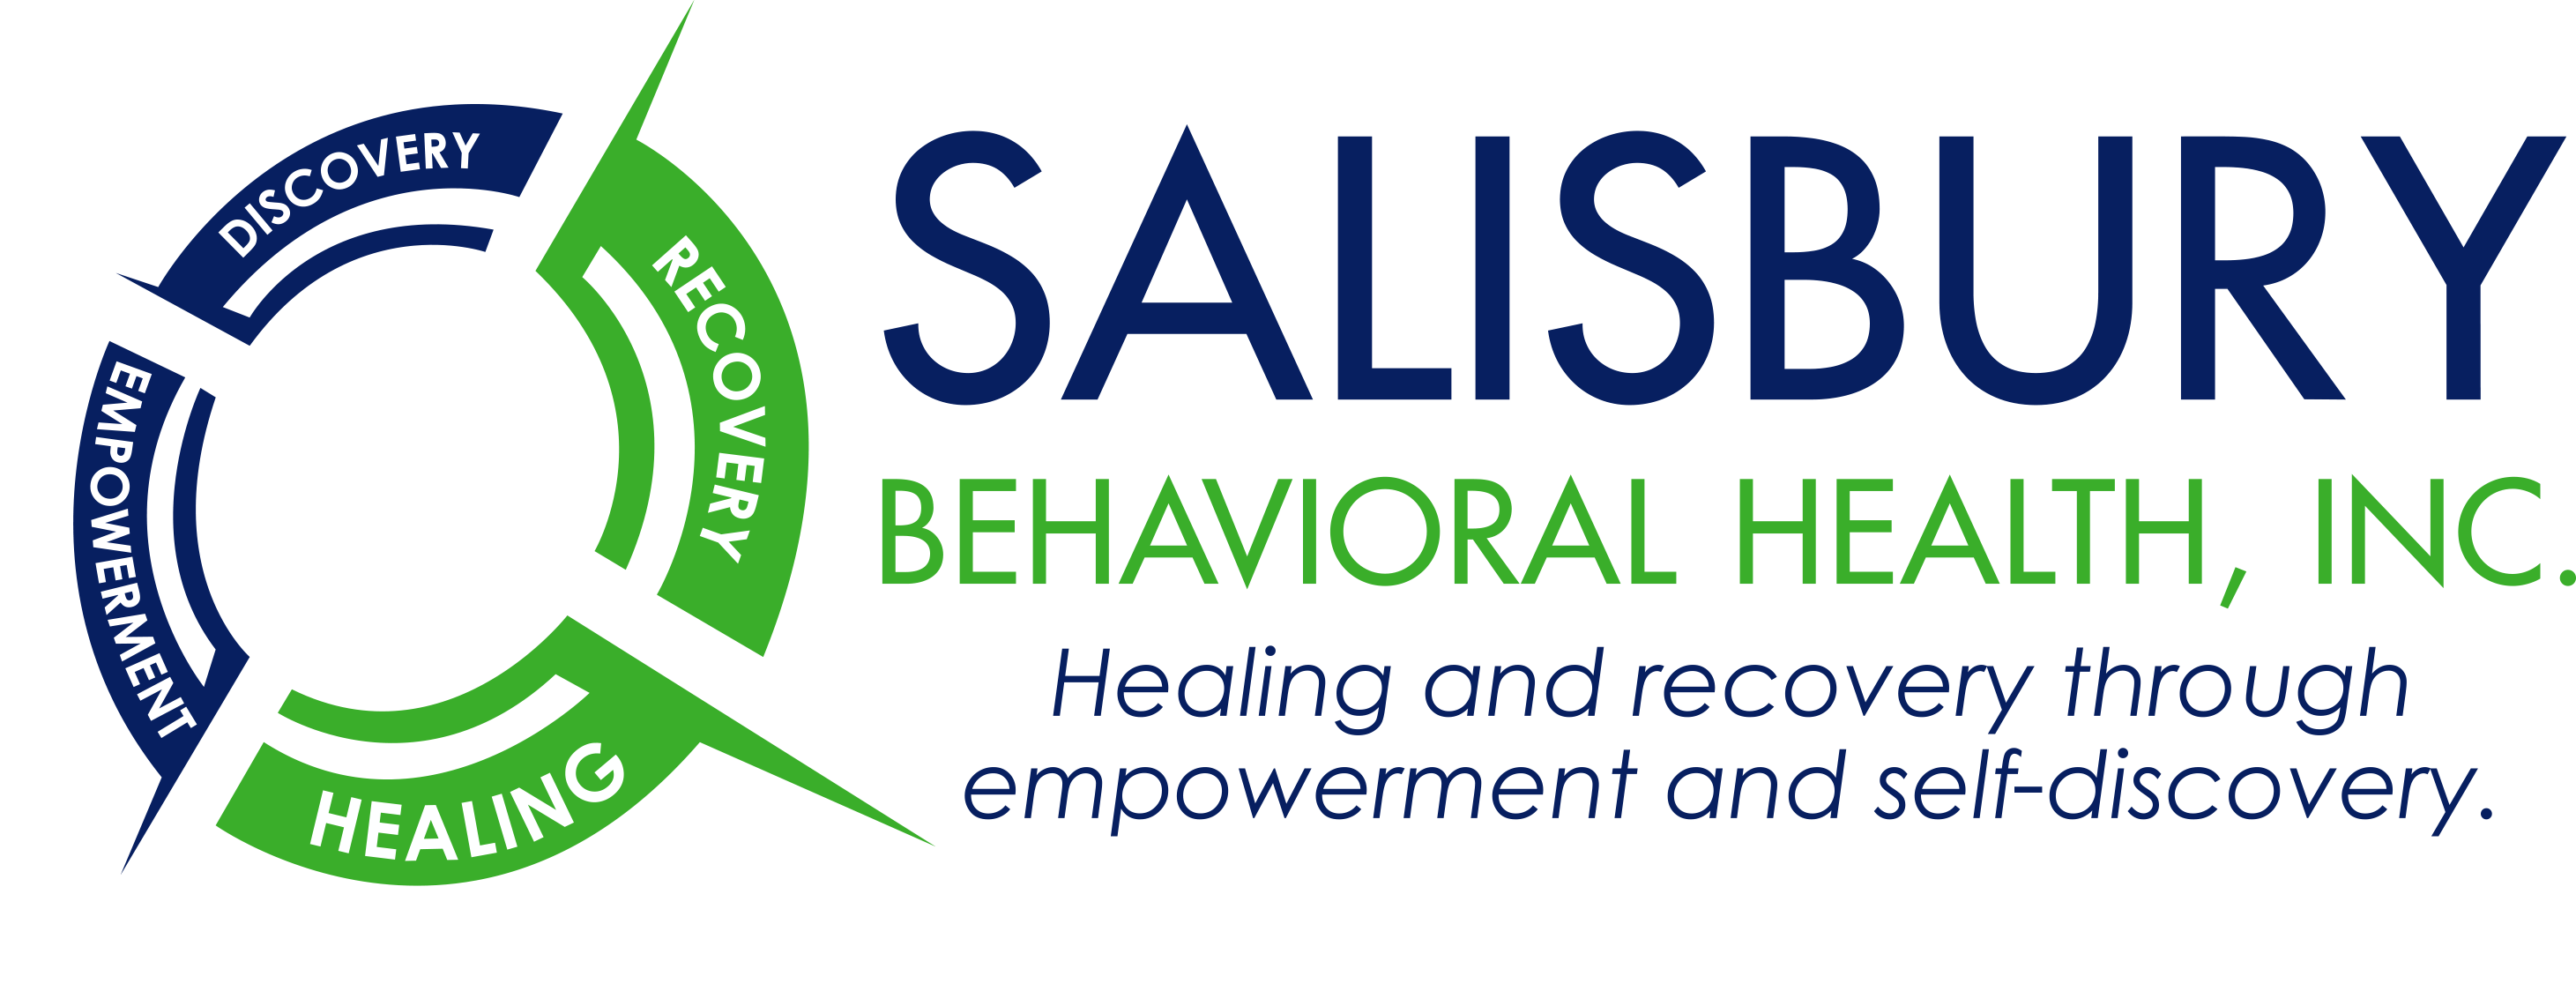 Final Salisbury Behavioral Health Logo Horizontal